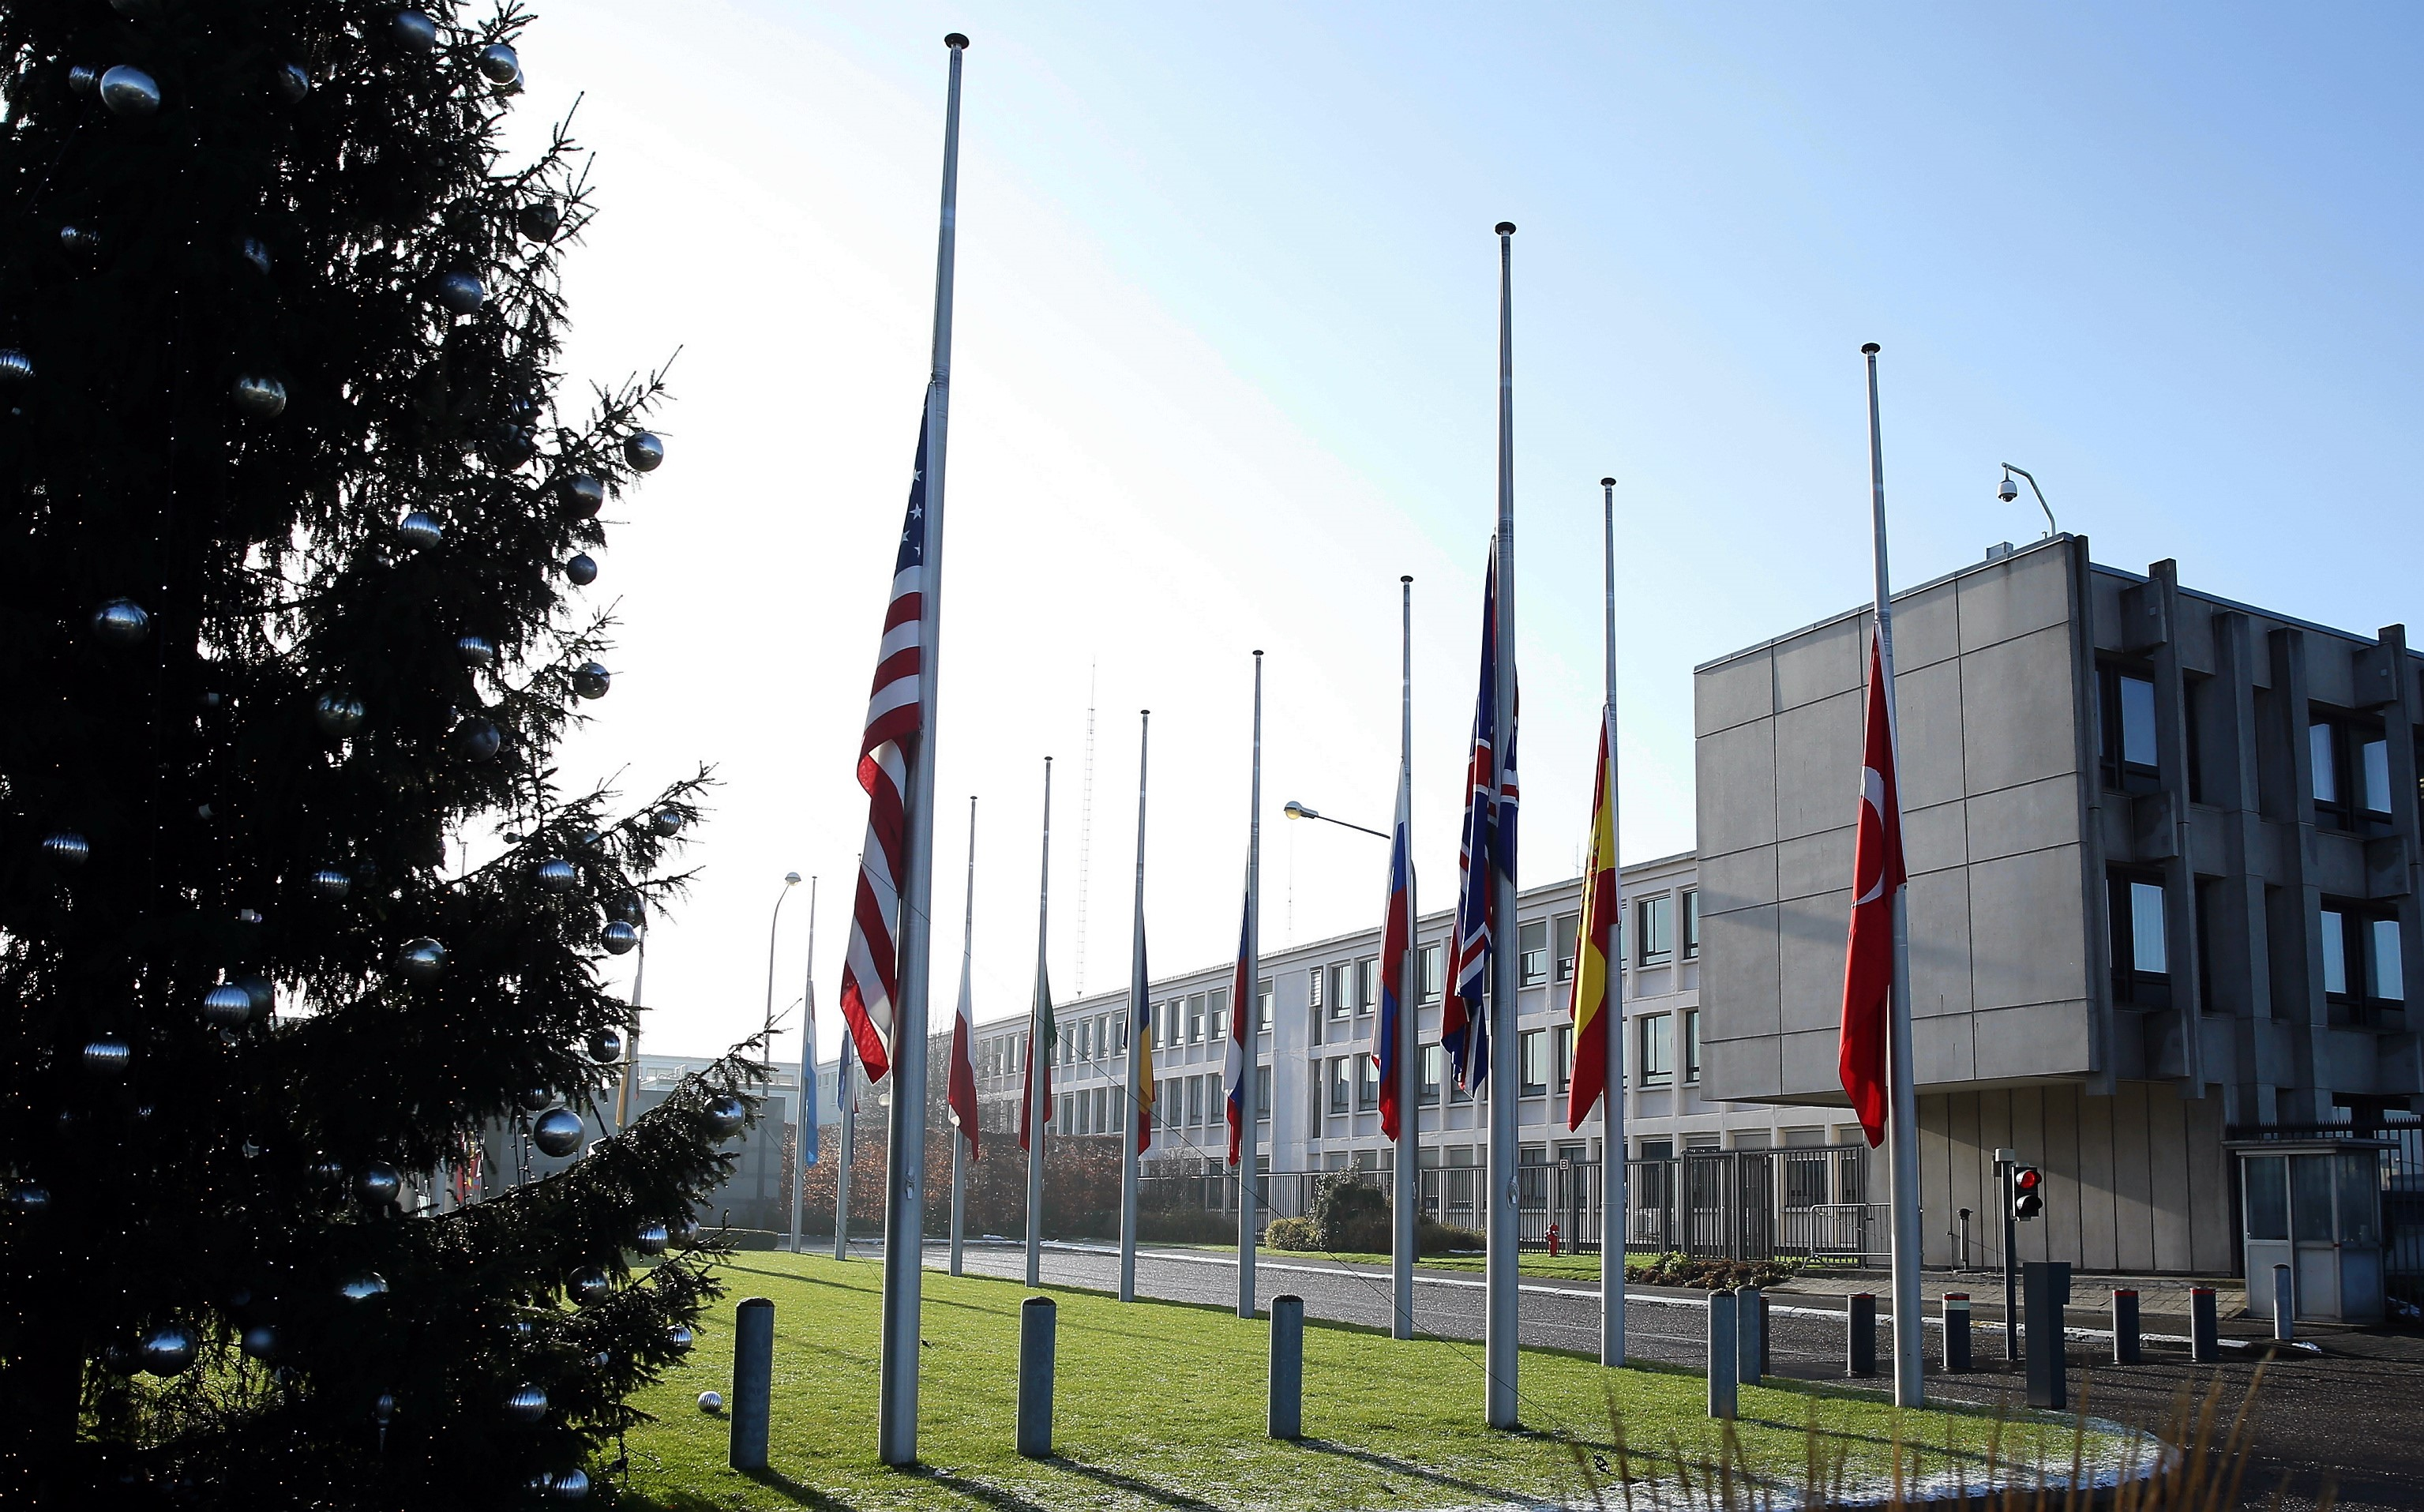 Flags of the NATO member countries fly at half-mast at NATO Headquarters in Brussels, Belgium on January 2, 2017, due to terror attack at a nightclub in Istanbul.